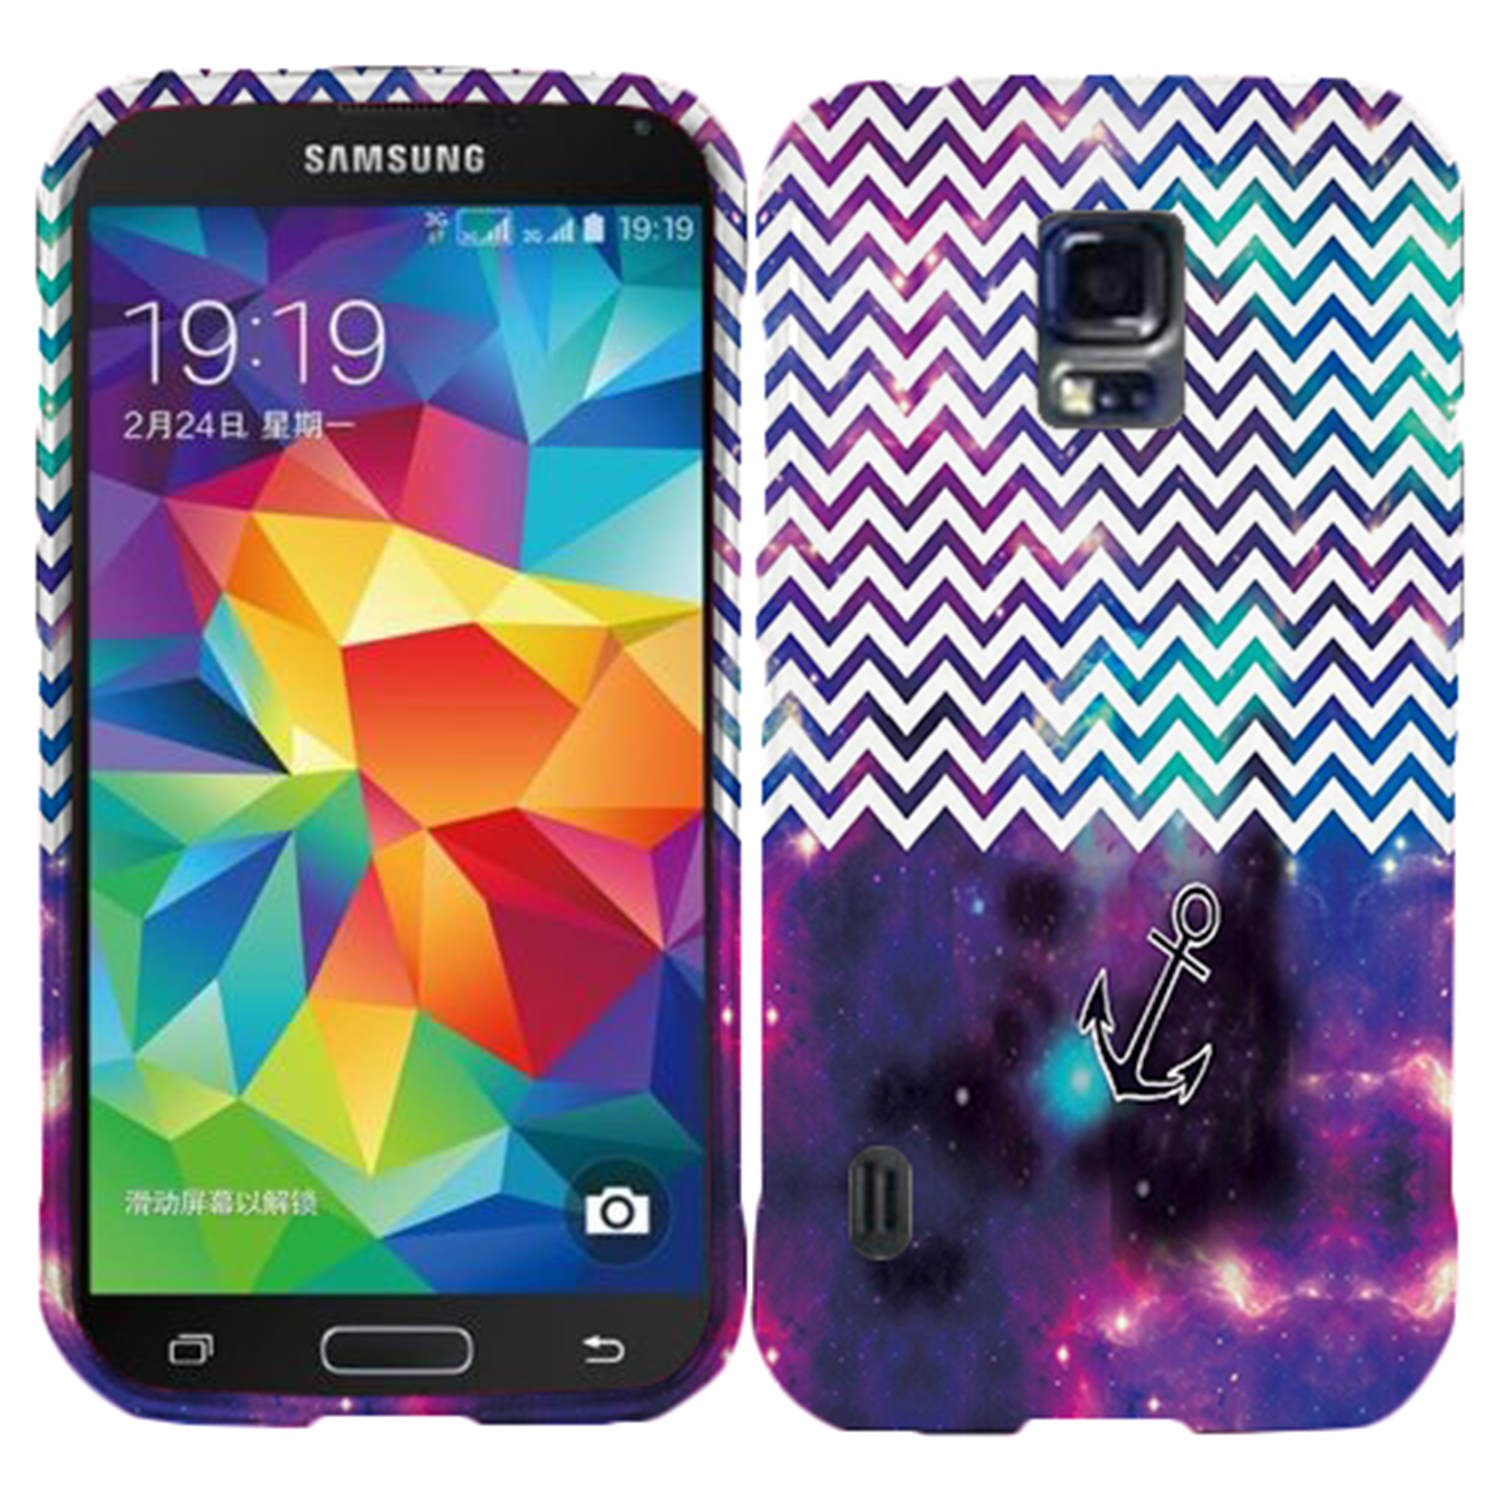 Purple Anchor Chevron Case for Samsung Galaxy S5 Active G870 Designer Cover Protector Snap on Shield Hard Shell Phone Case